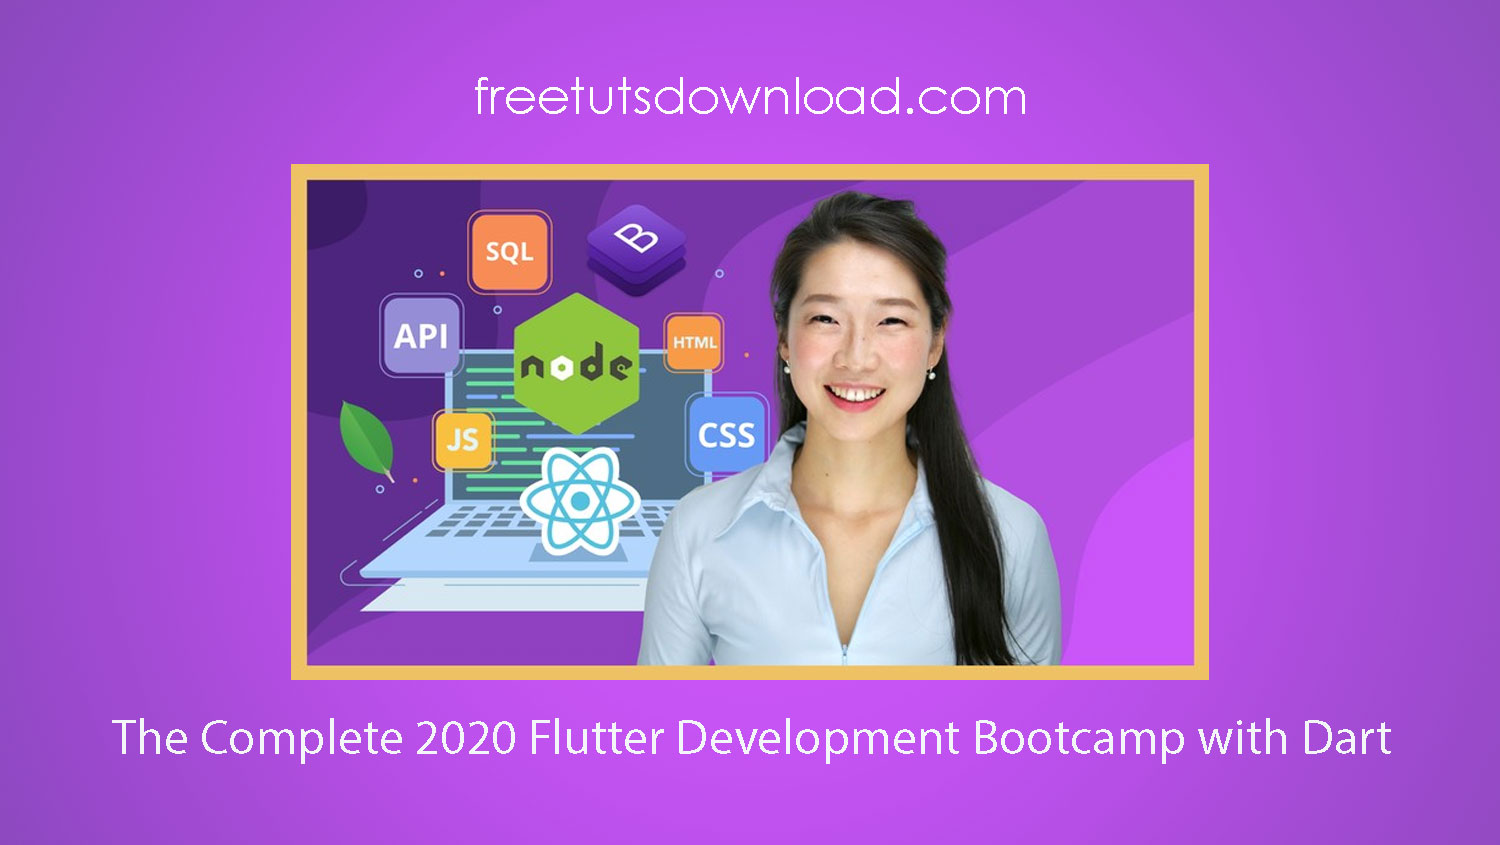 The Complete 2020 Web Development Bootcamp free download